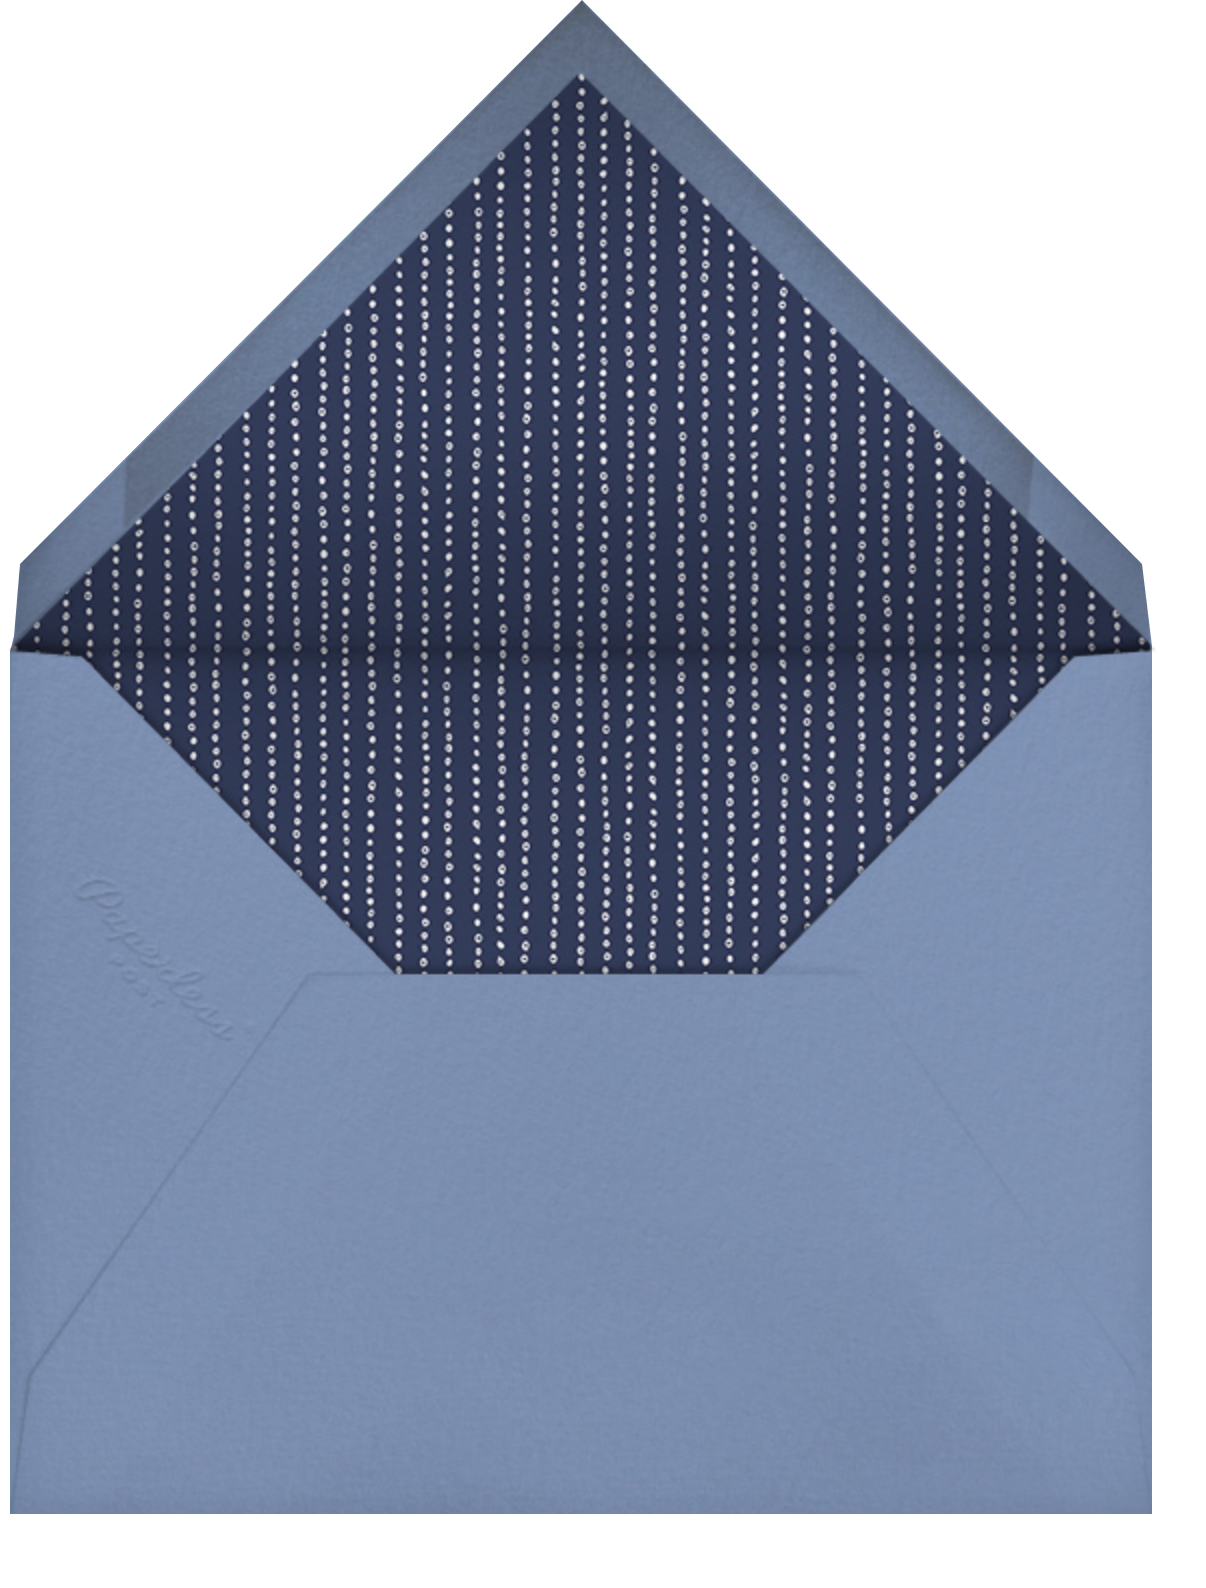 Indented Rounded Corners (Tall) - Dark Blue - Paperless Post - Baptism  - envelope back